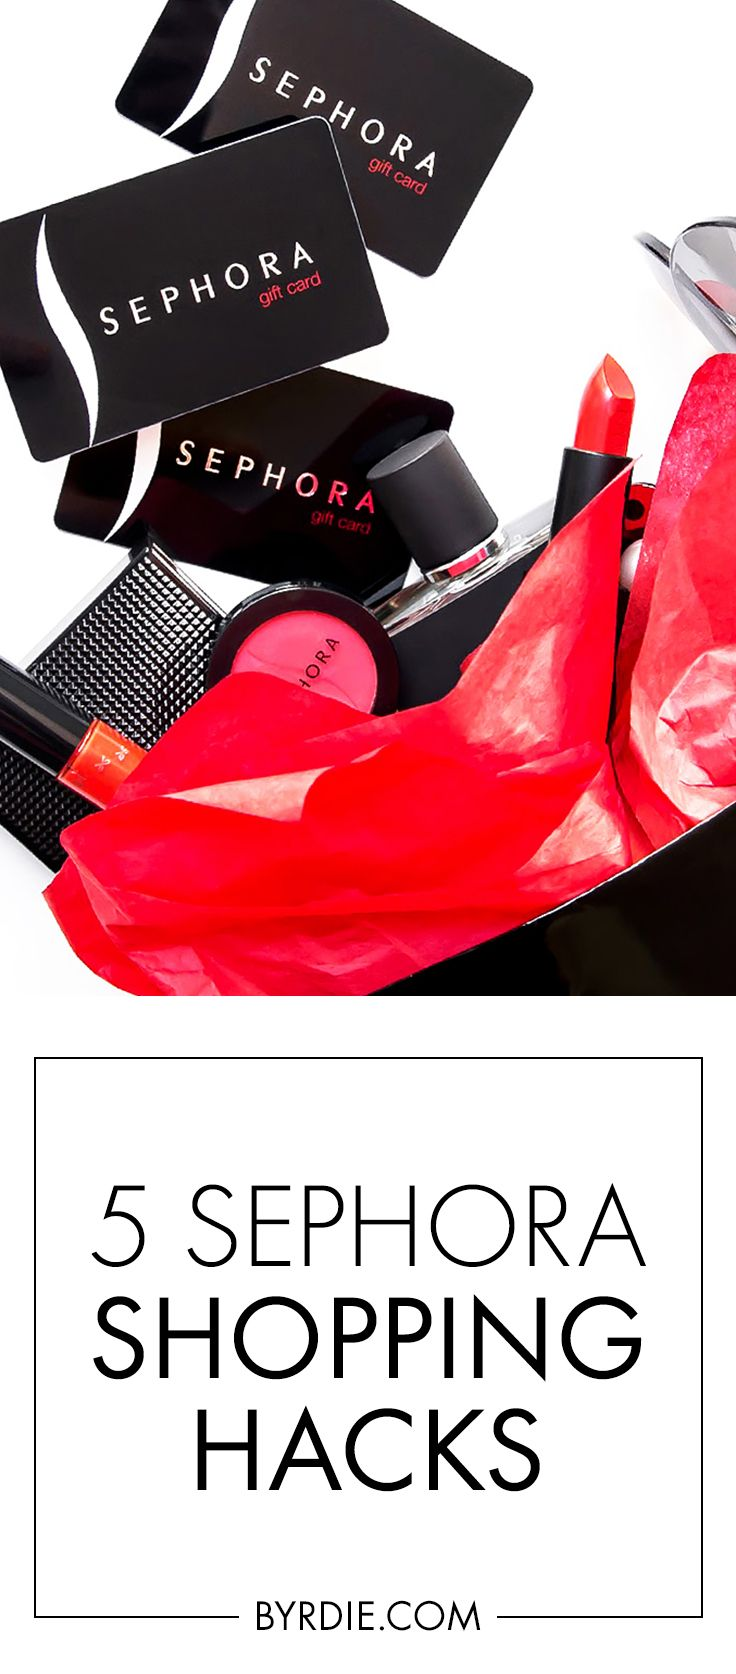 25 Clever Hacks We Learned From Sephora Reviews Shopping